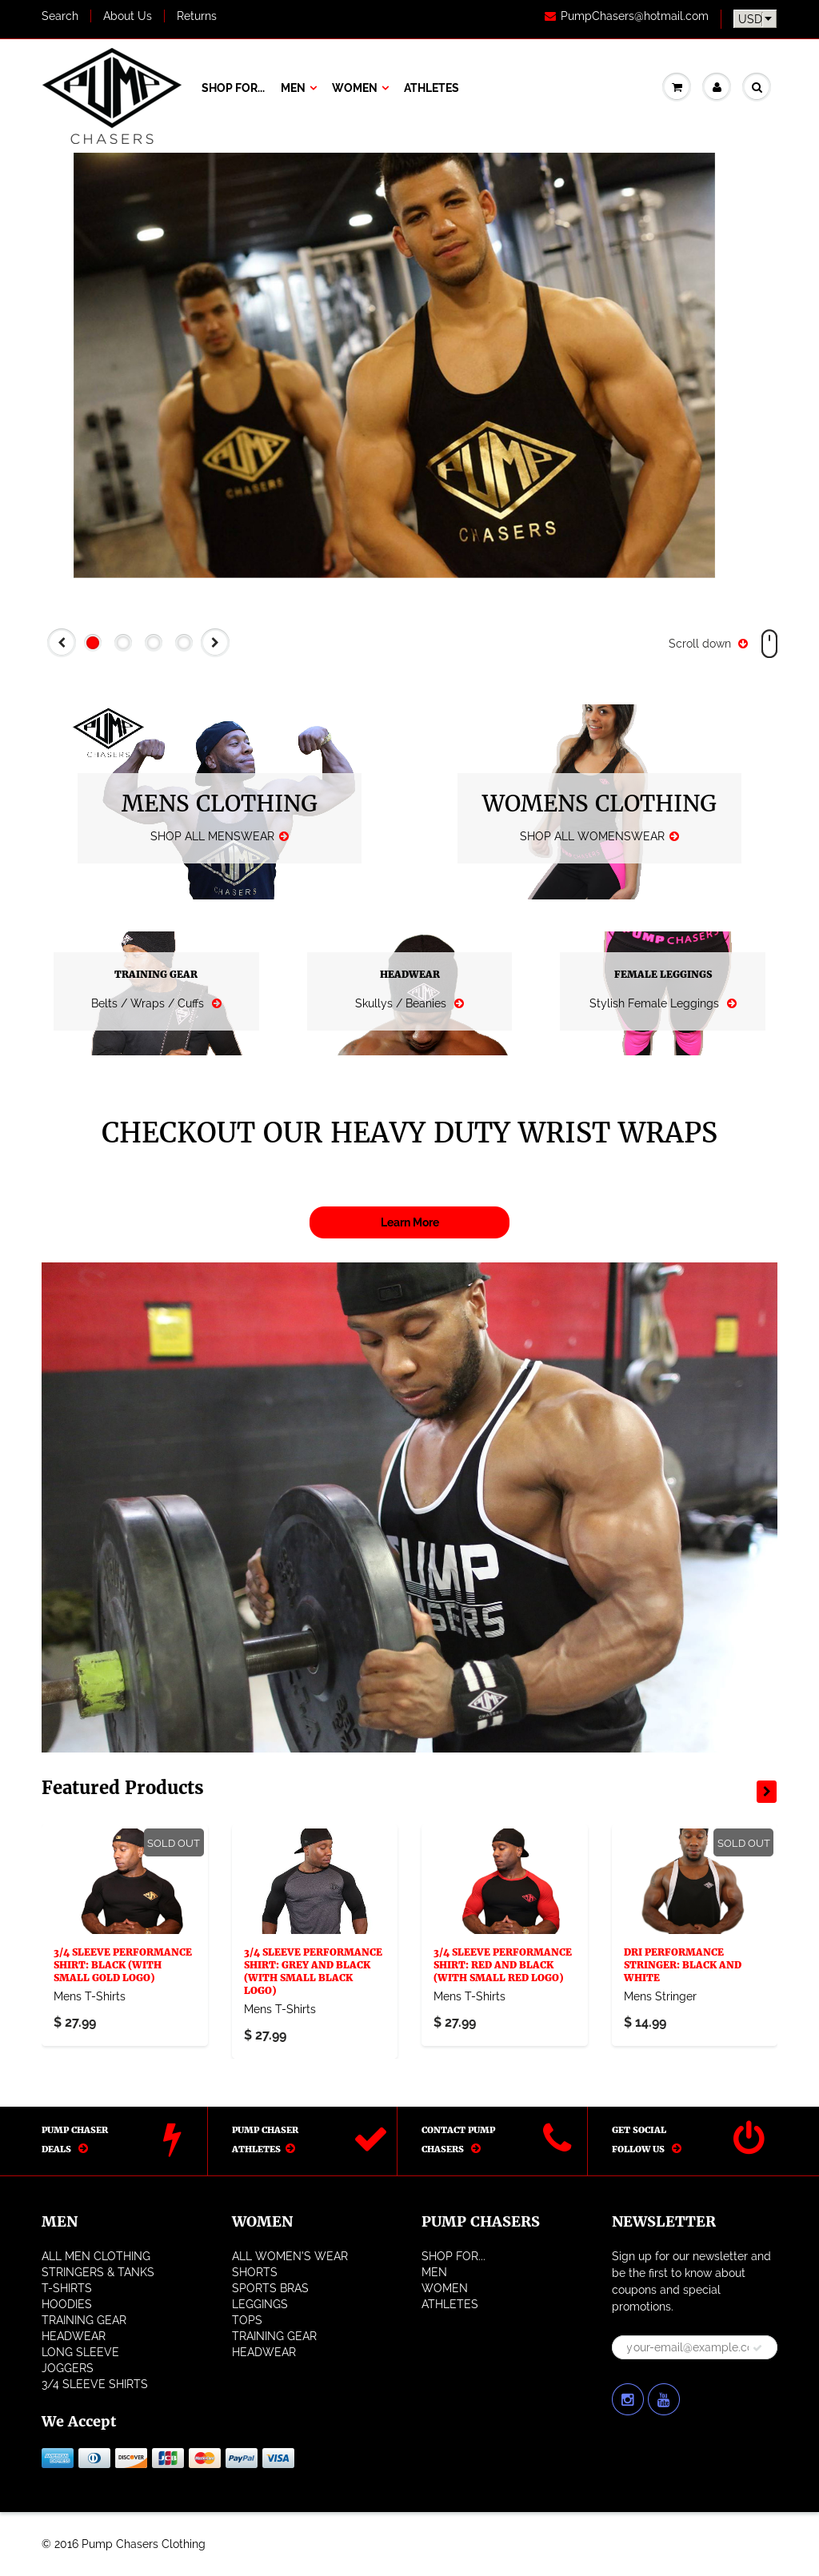 0d398e5852df3 Pump Chasers Clothing Competitors